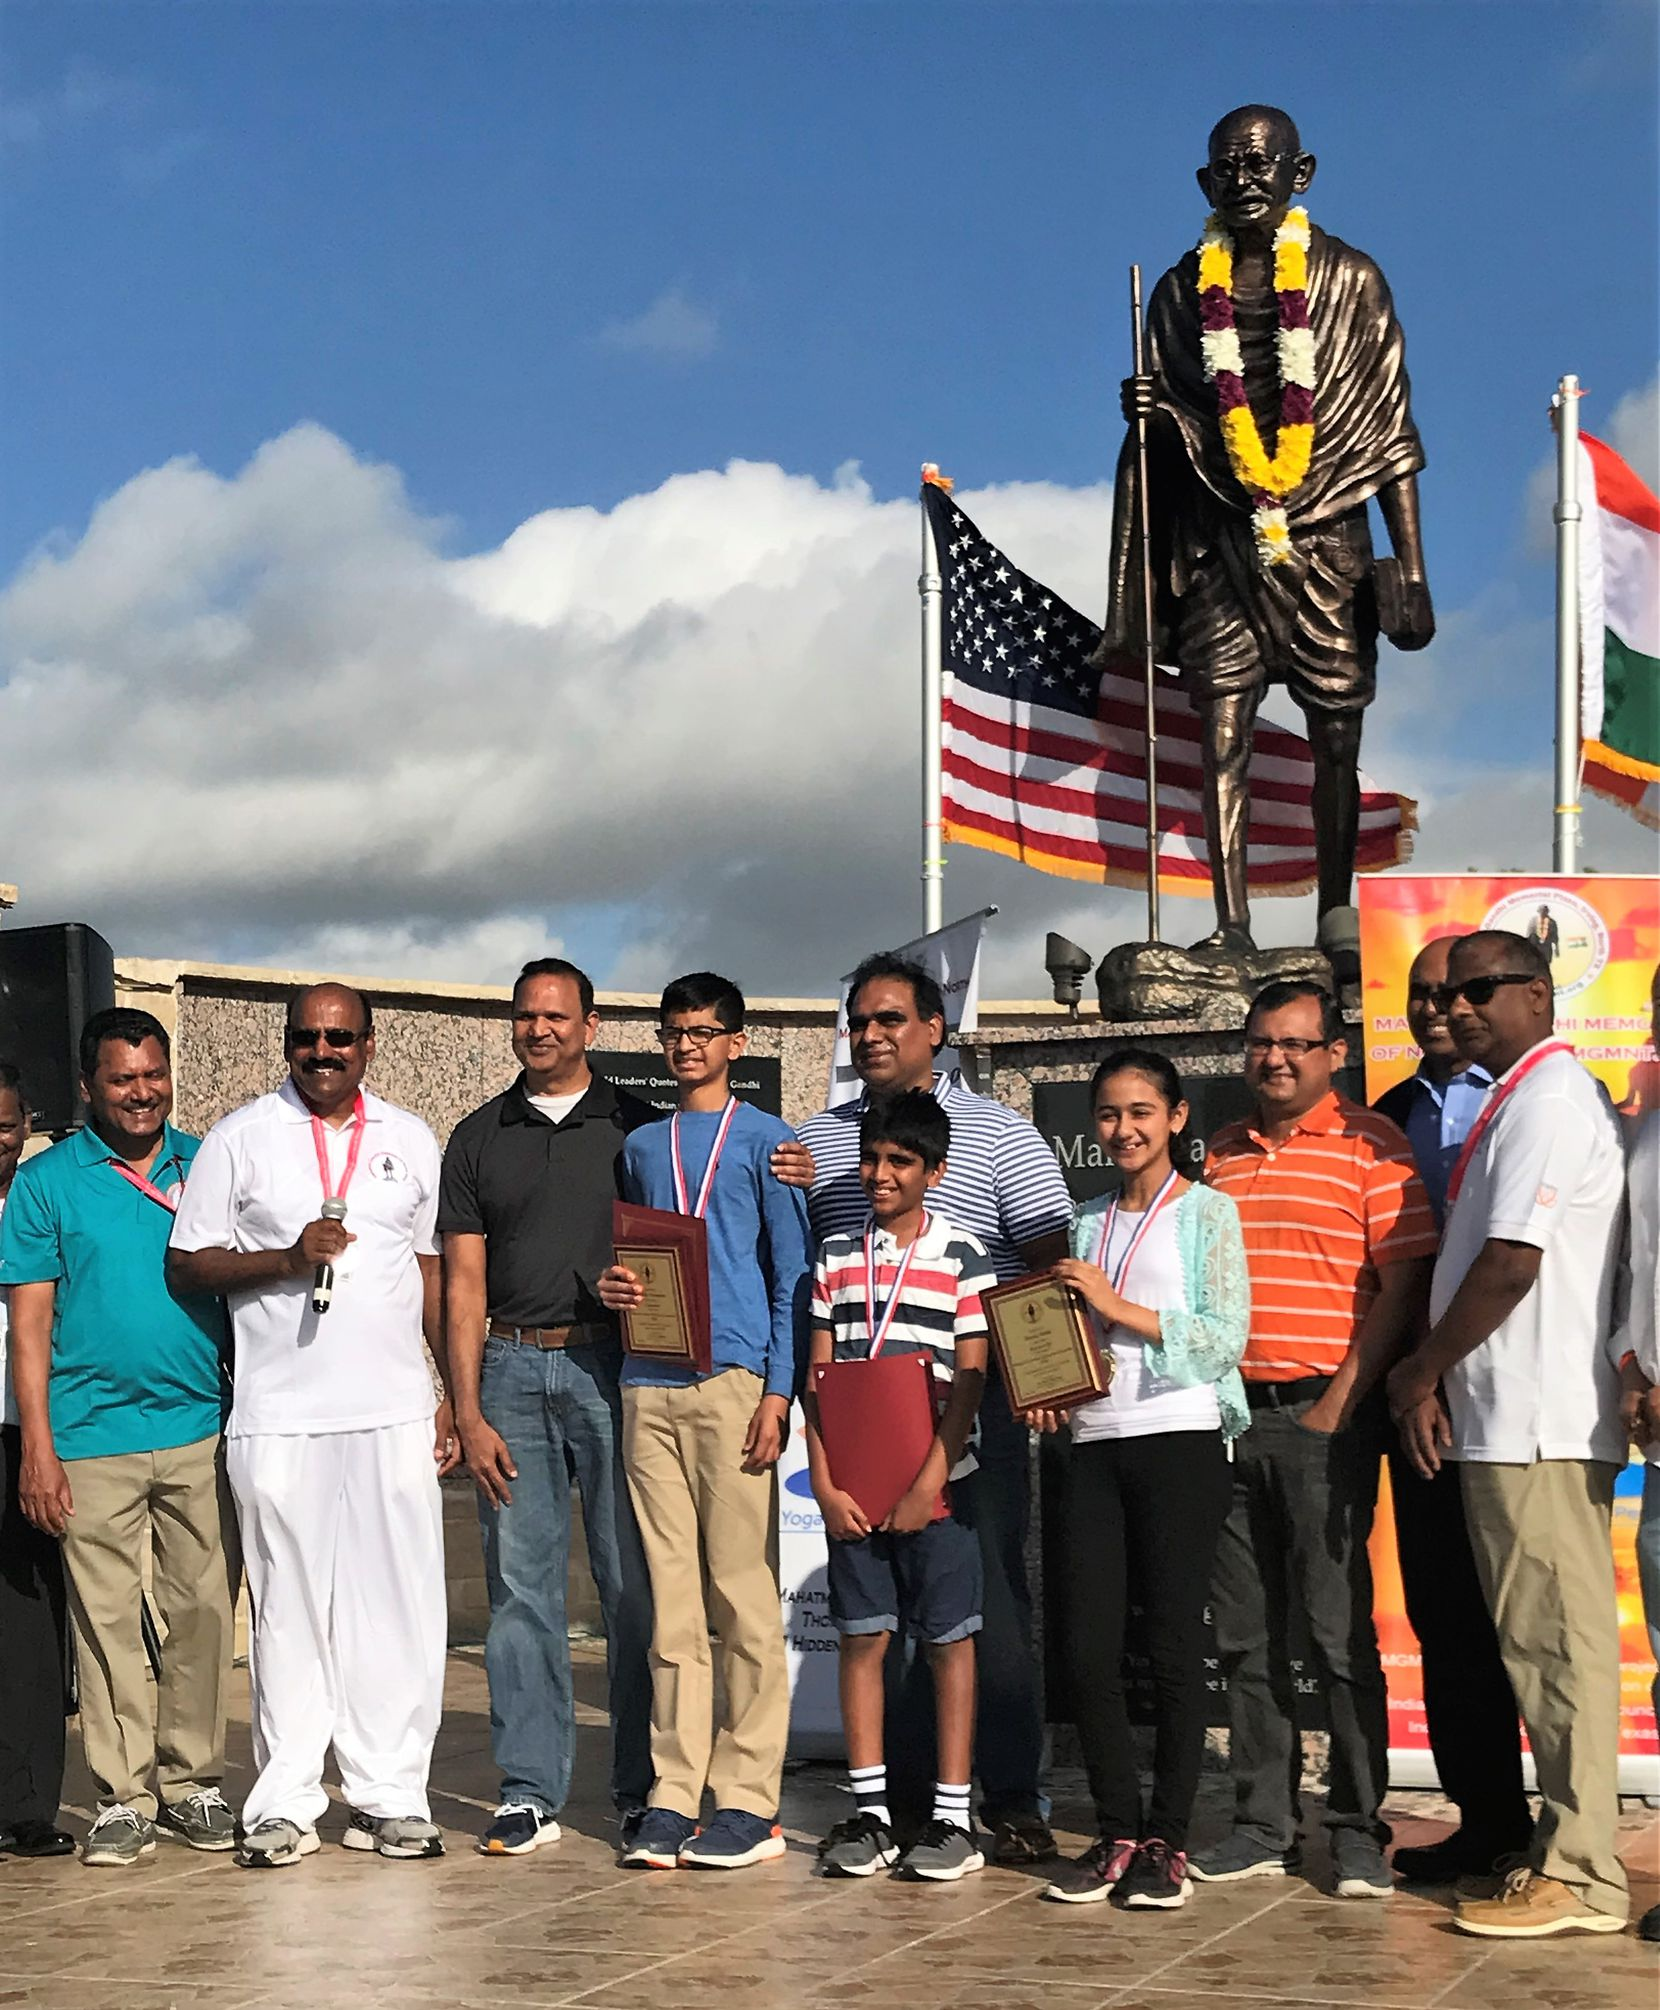 Mahatma Gandhi Memorial officials presented plaques and ribbons to the top three winners of the 2018 Scripps National Spelling Bee who posed with their fathers on Father's Day at the memorial in Irving. The winners are Karthik Nemmani (fourth from left), Abhijay Kodali (with red folder) and Naysa Modi. (Deborah Fleck/Staff)